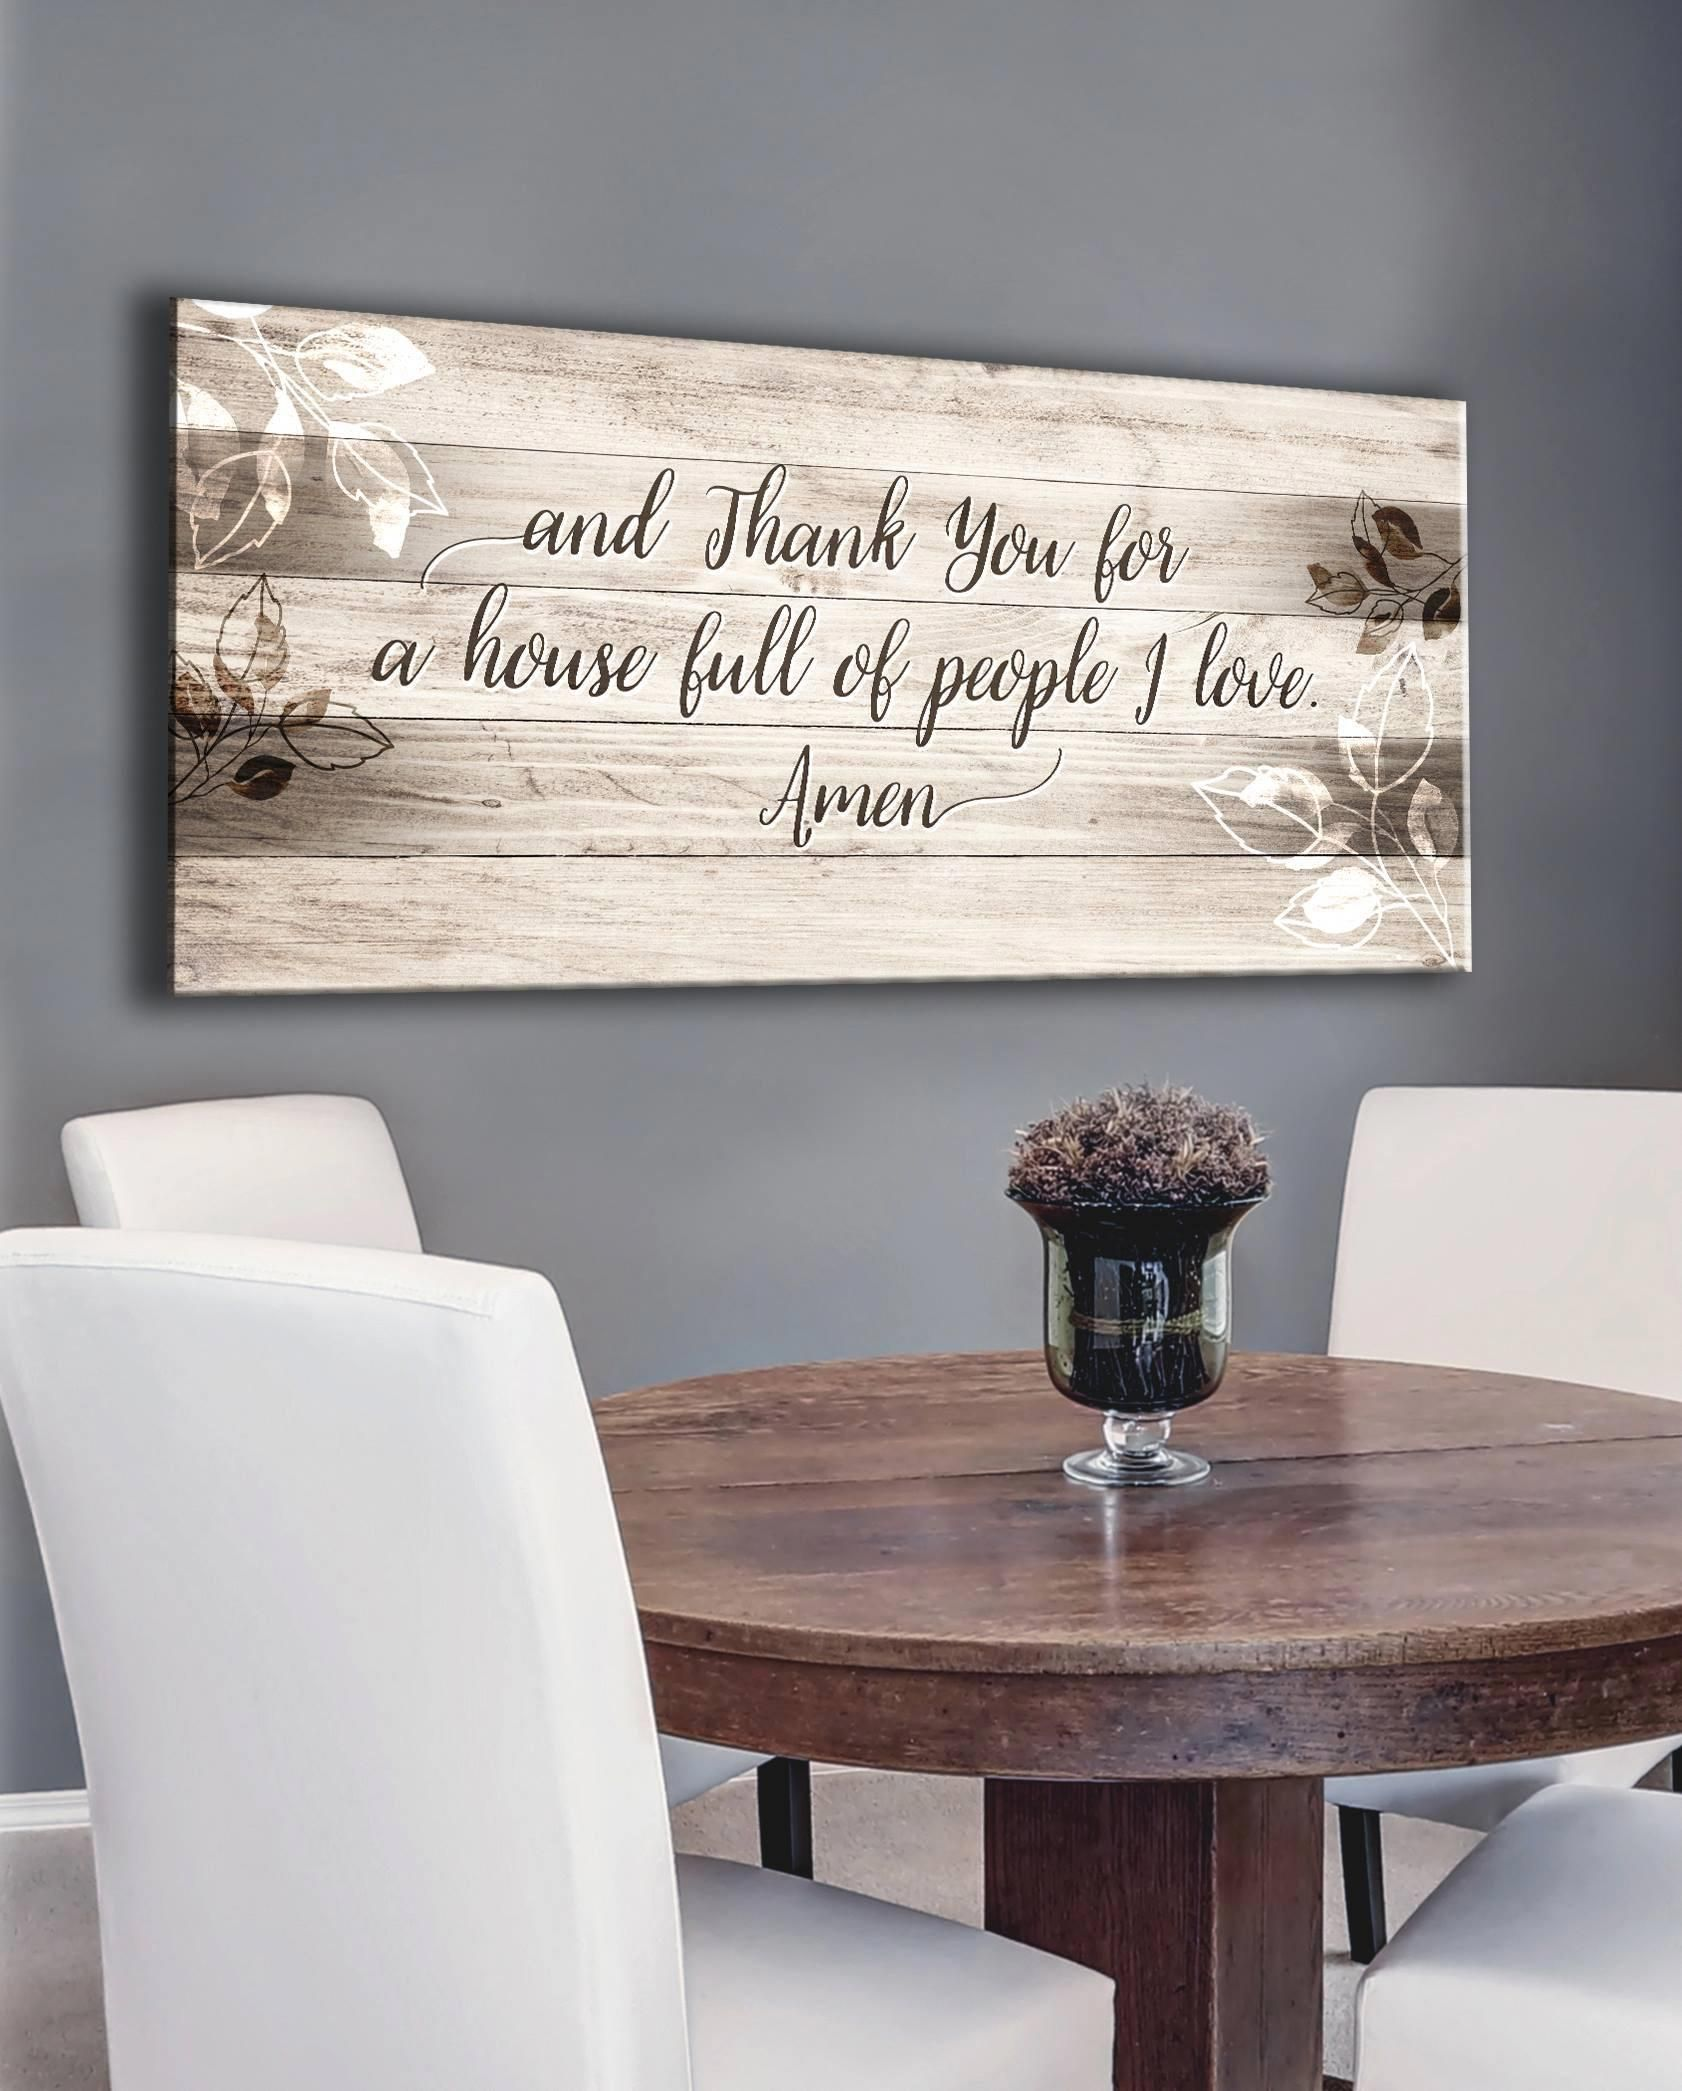 This Method Seems Good Upcycled Kitchen Dining Room Wall Art